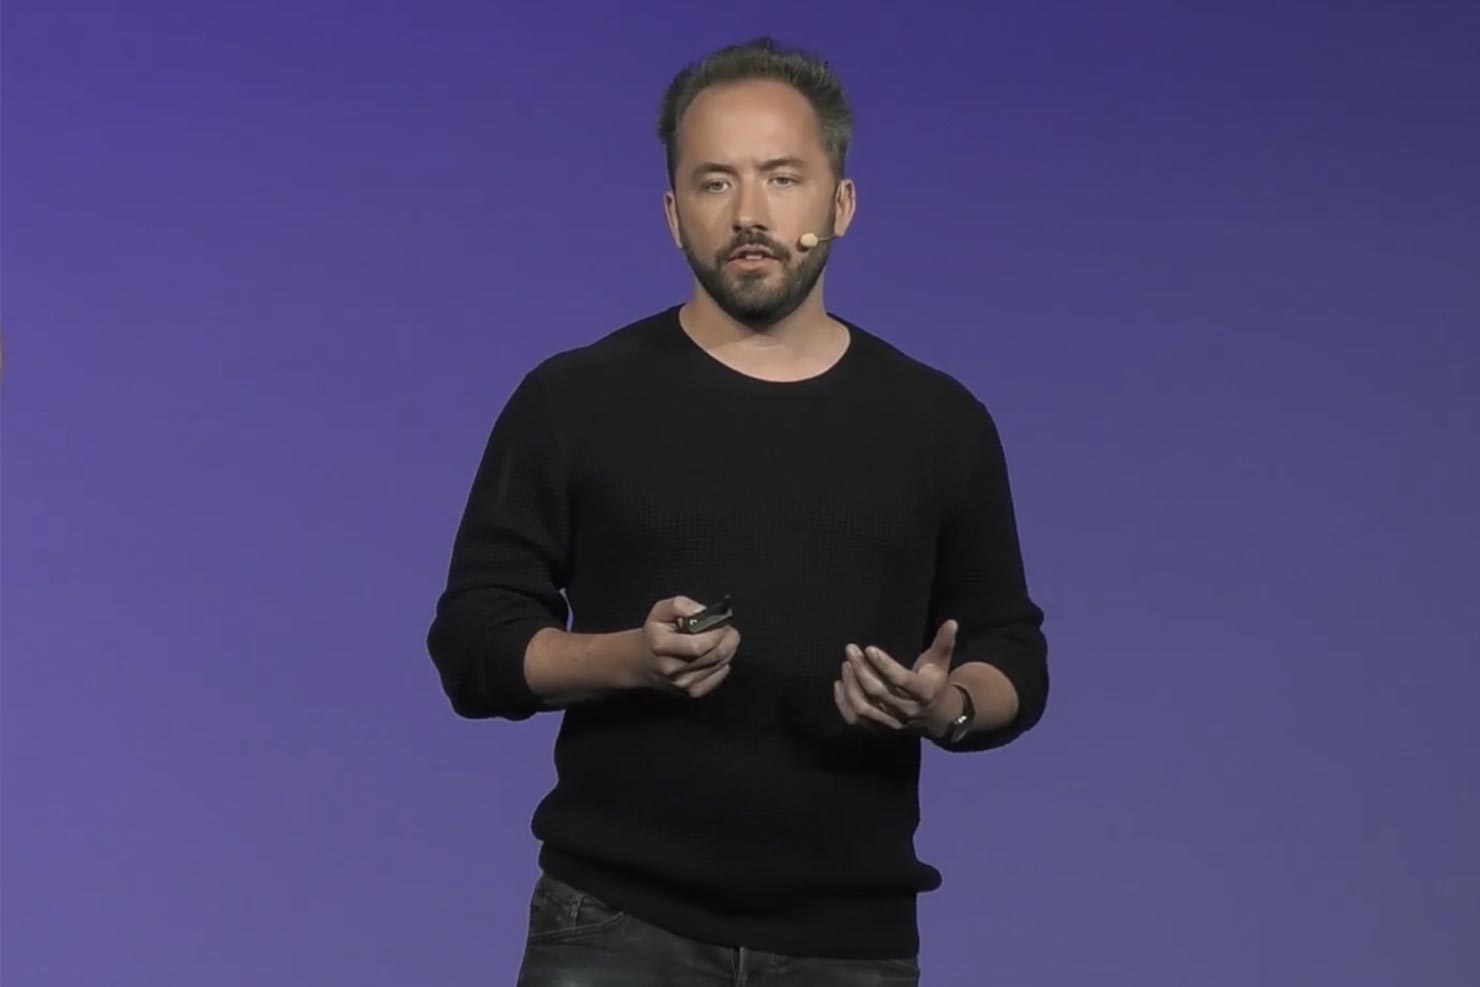 Drew Houston CEO of Dropbox, talking on a presentation stage